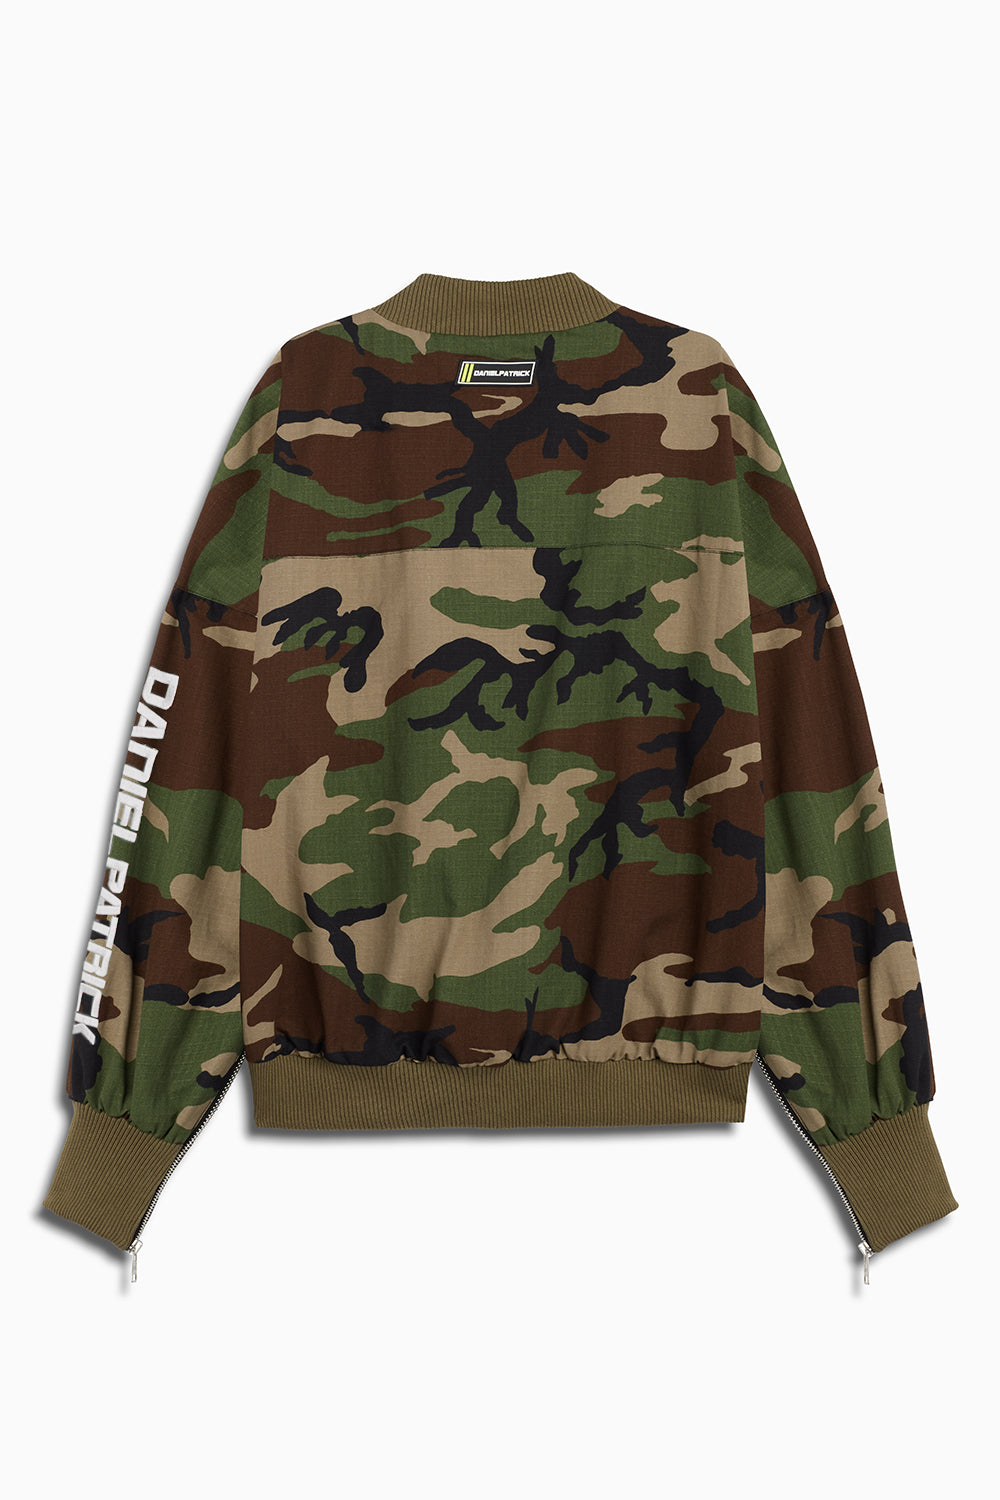 DP embroidered sleeve bomber in camo/grey by daniel patrick